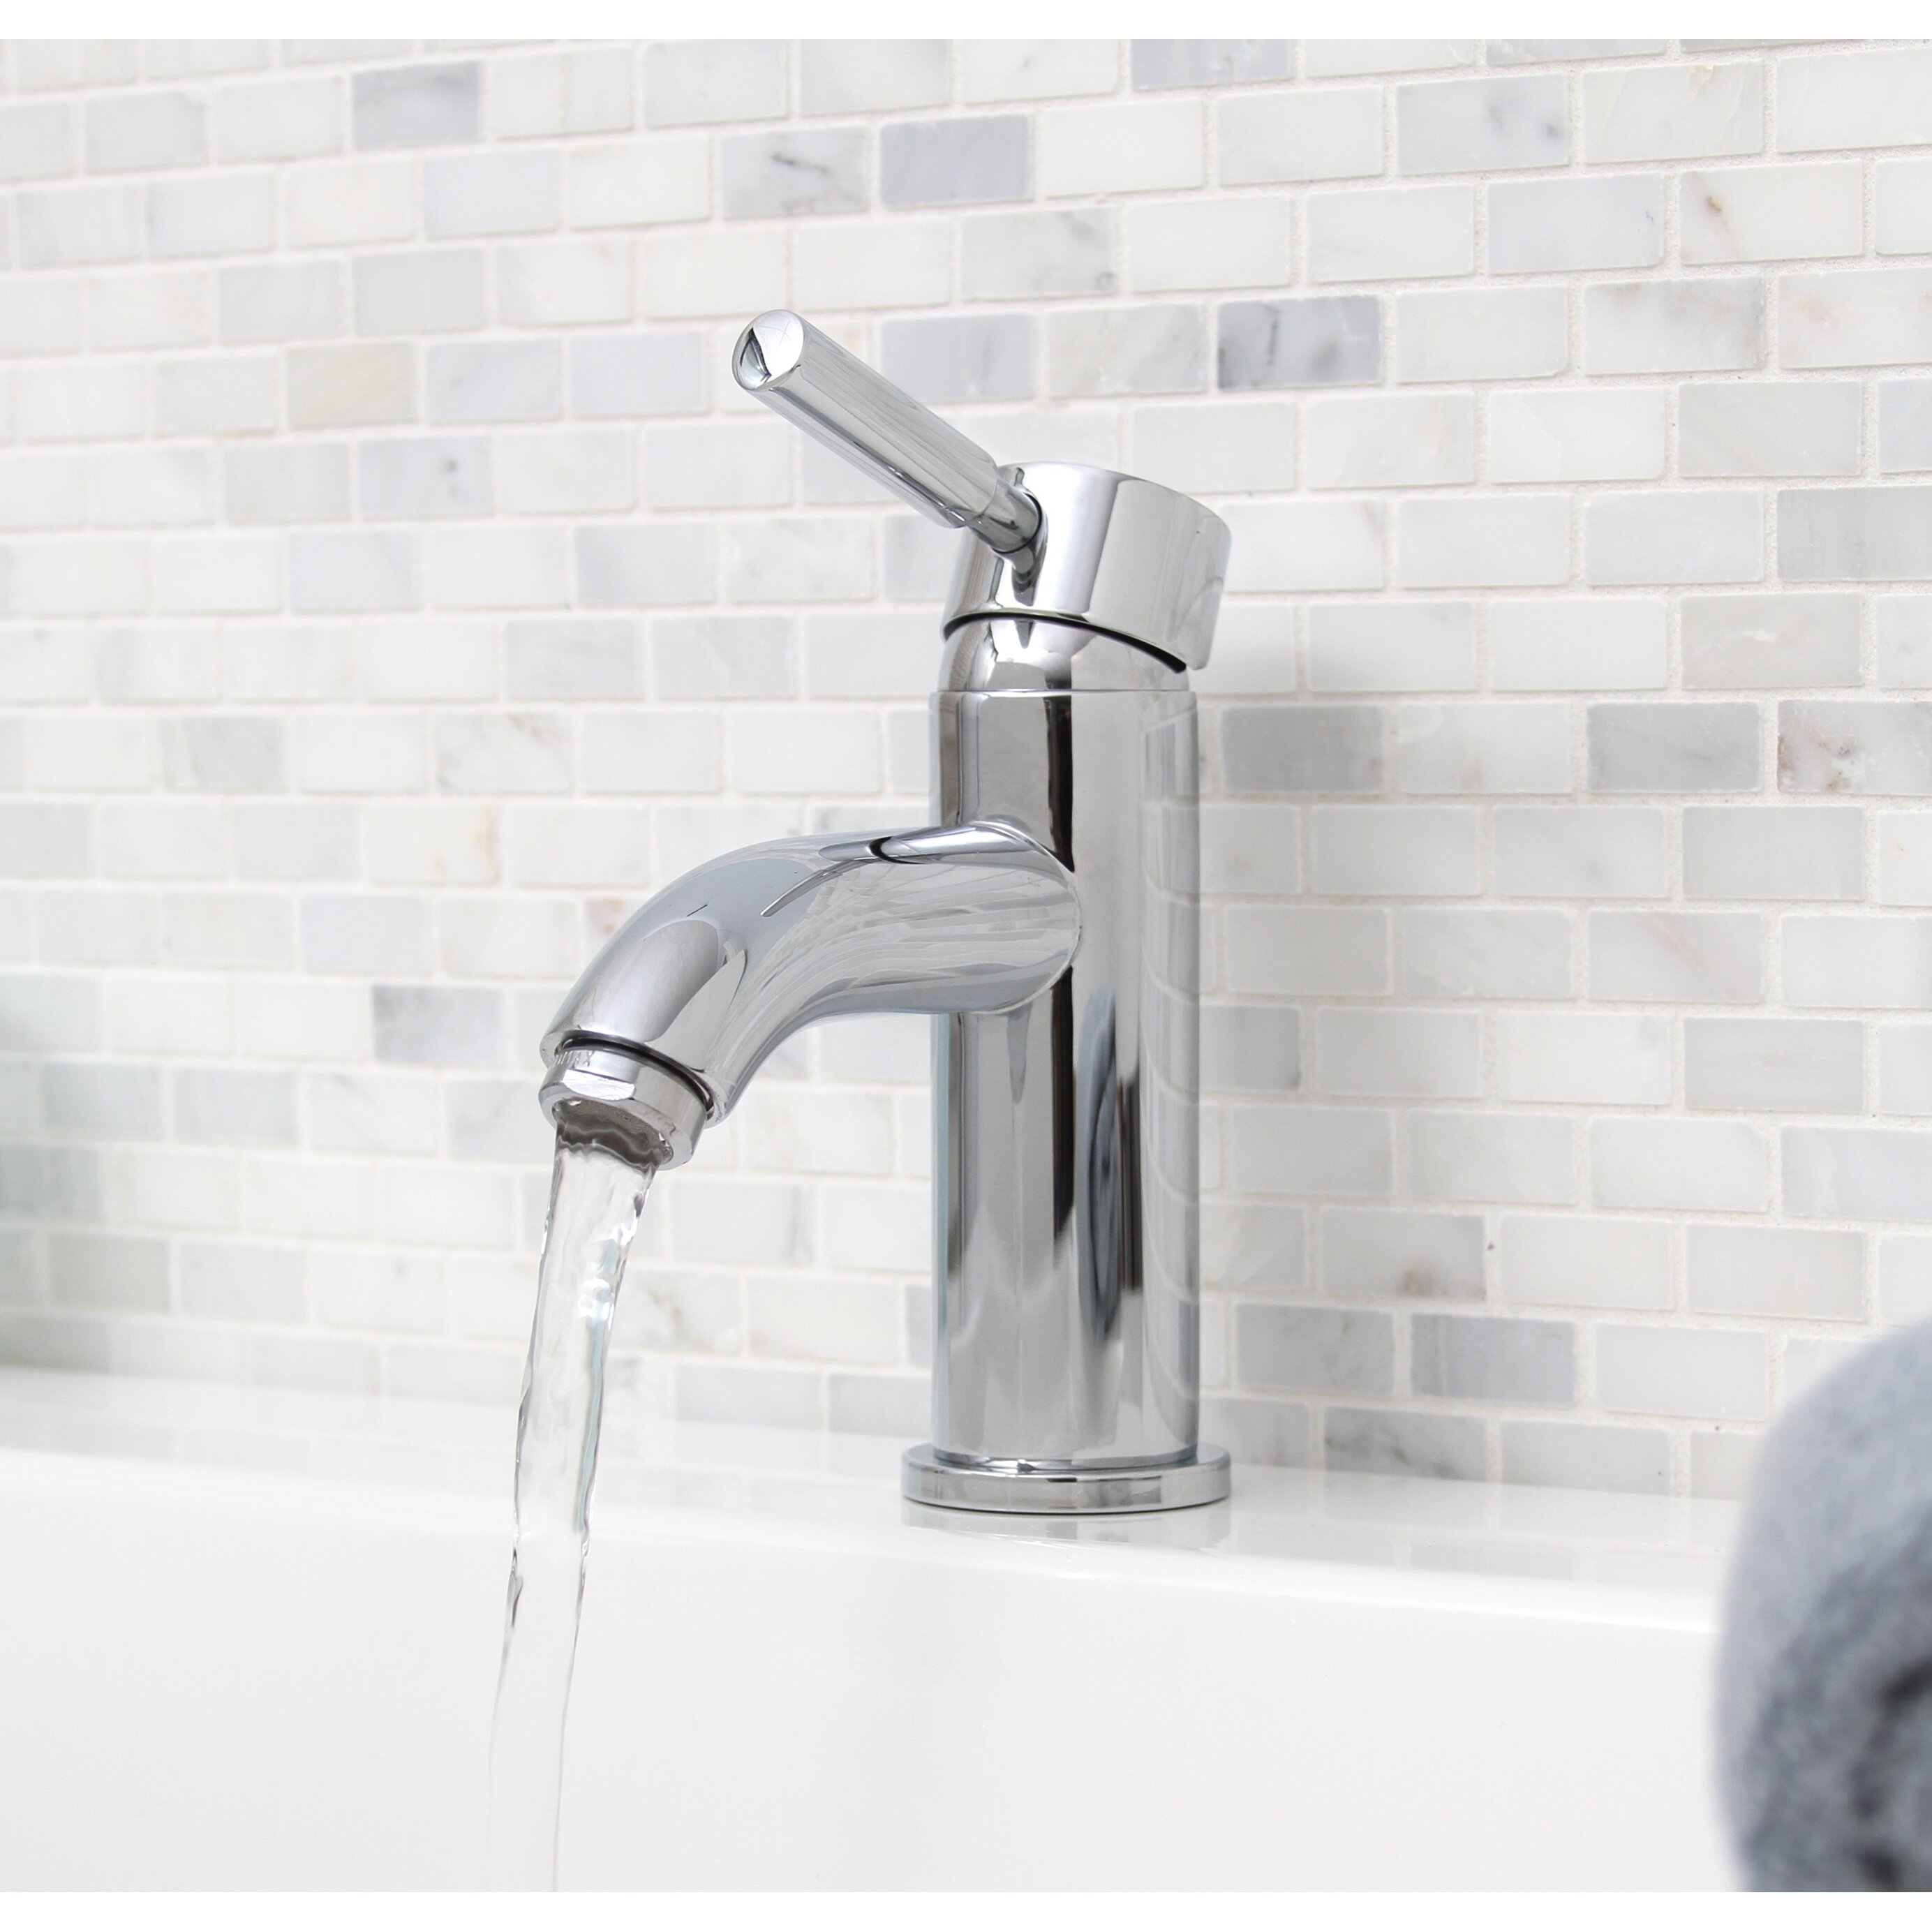 Bathroom Single Handle Faucet : Premier Faucet Essen Single Handle Bathroom Faucet & Reviews Wayfair